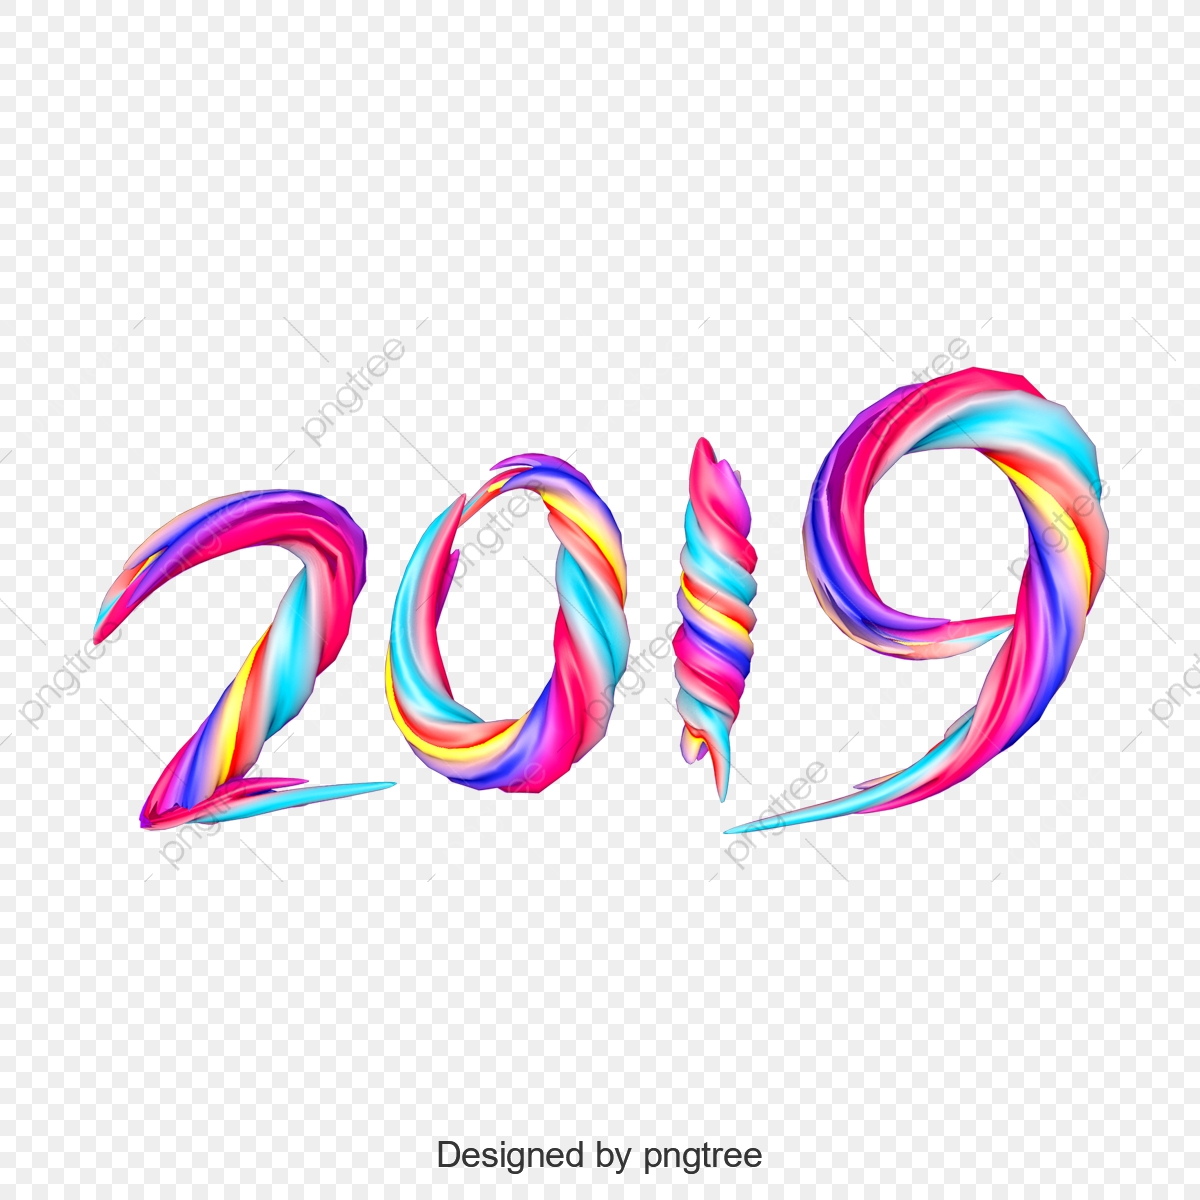 💋 2019 png background full hd download | Happy New Year 2019 PNG